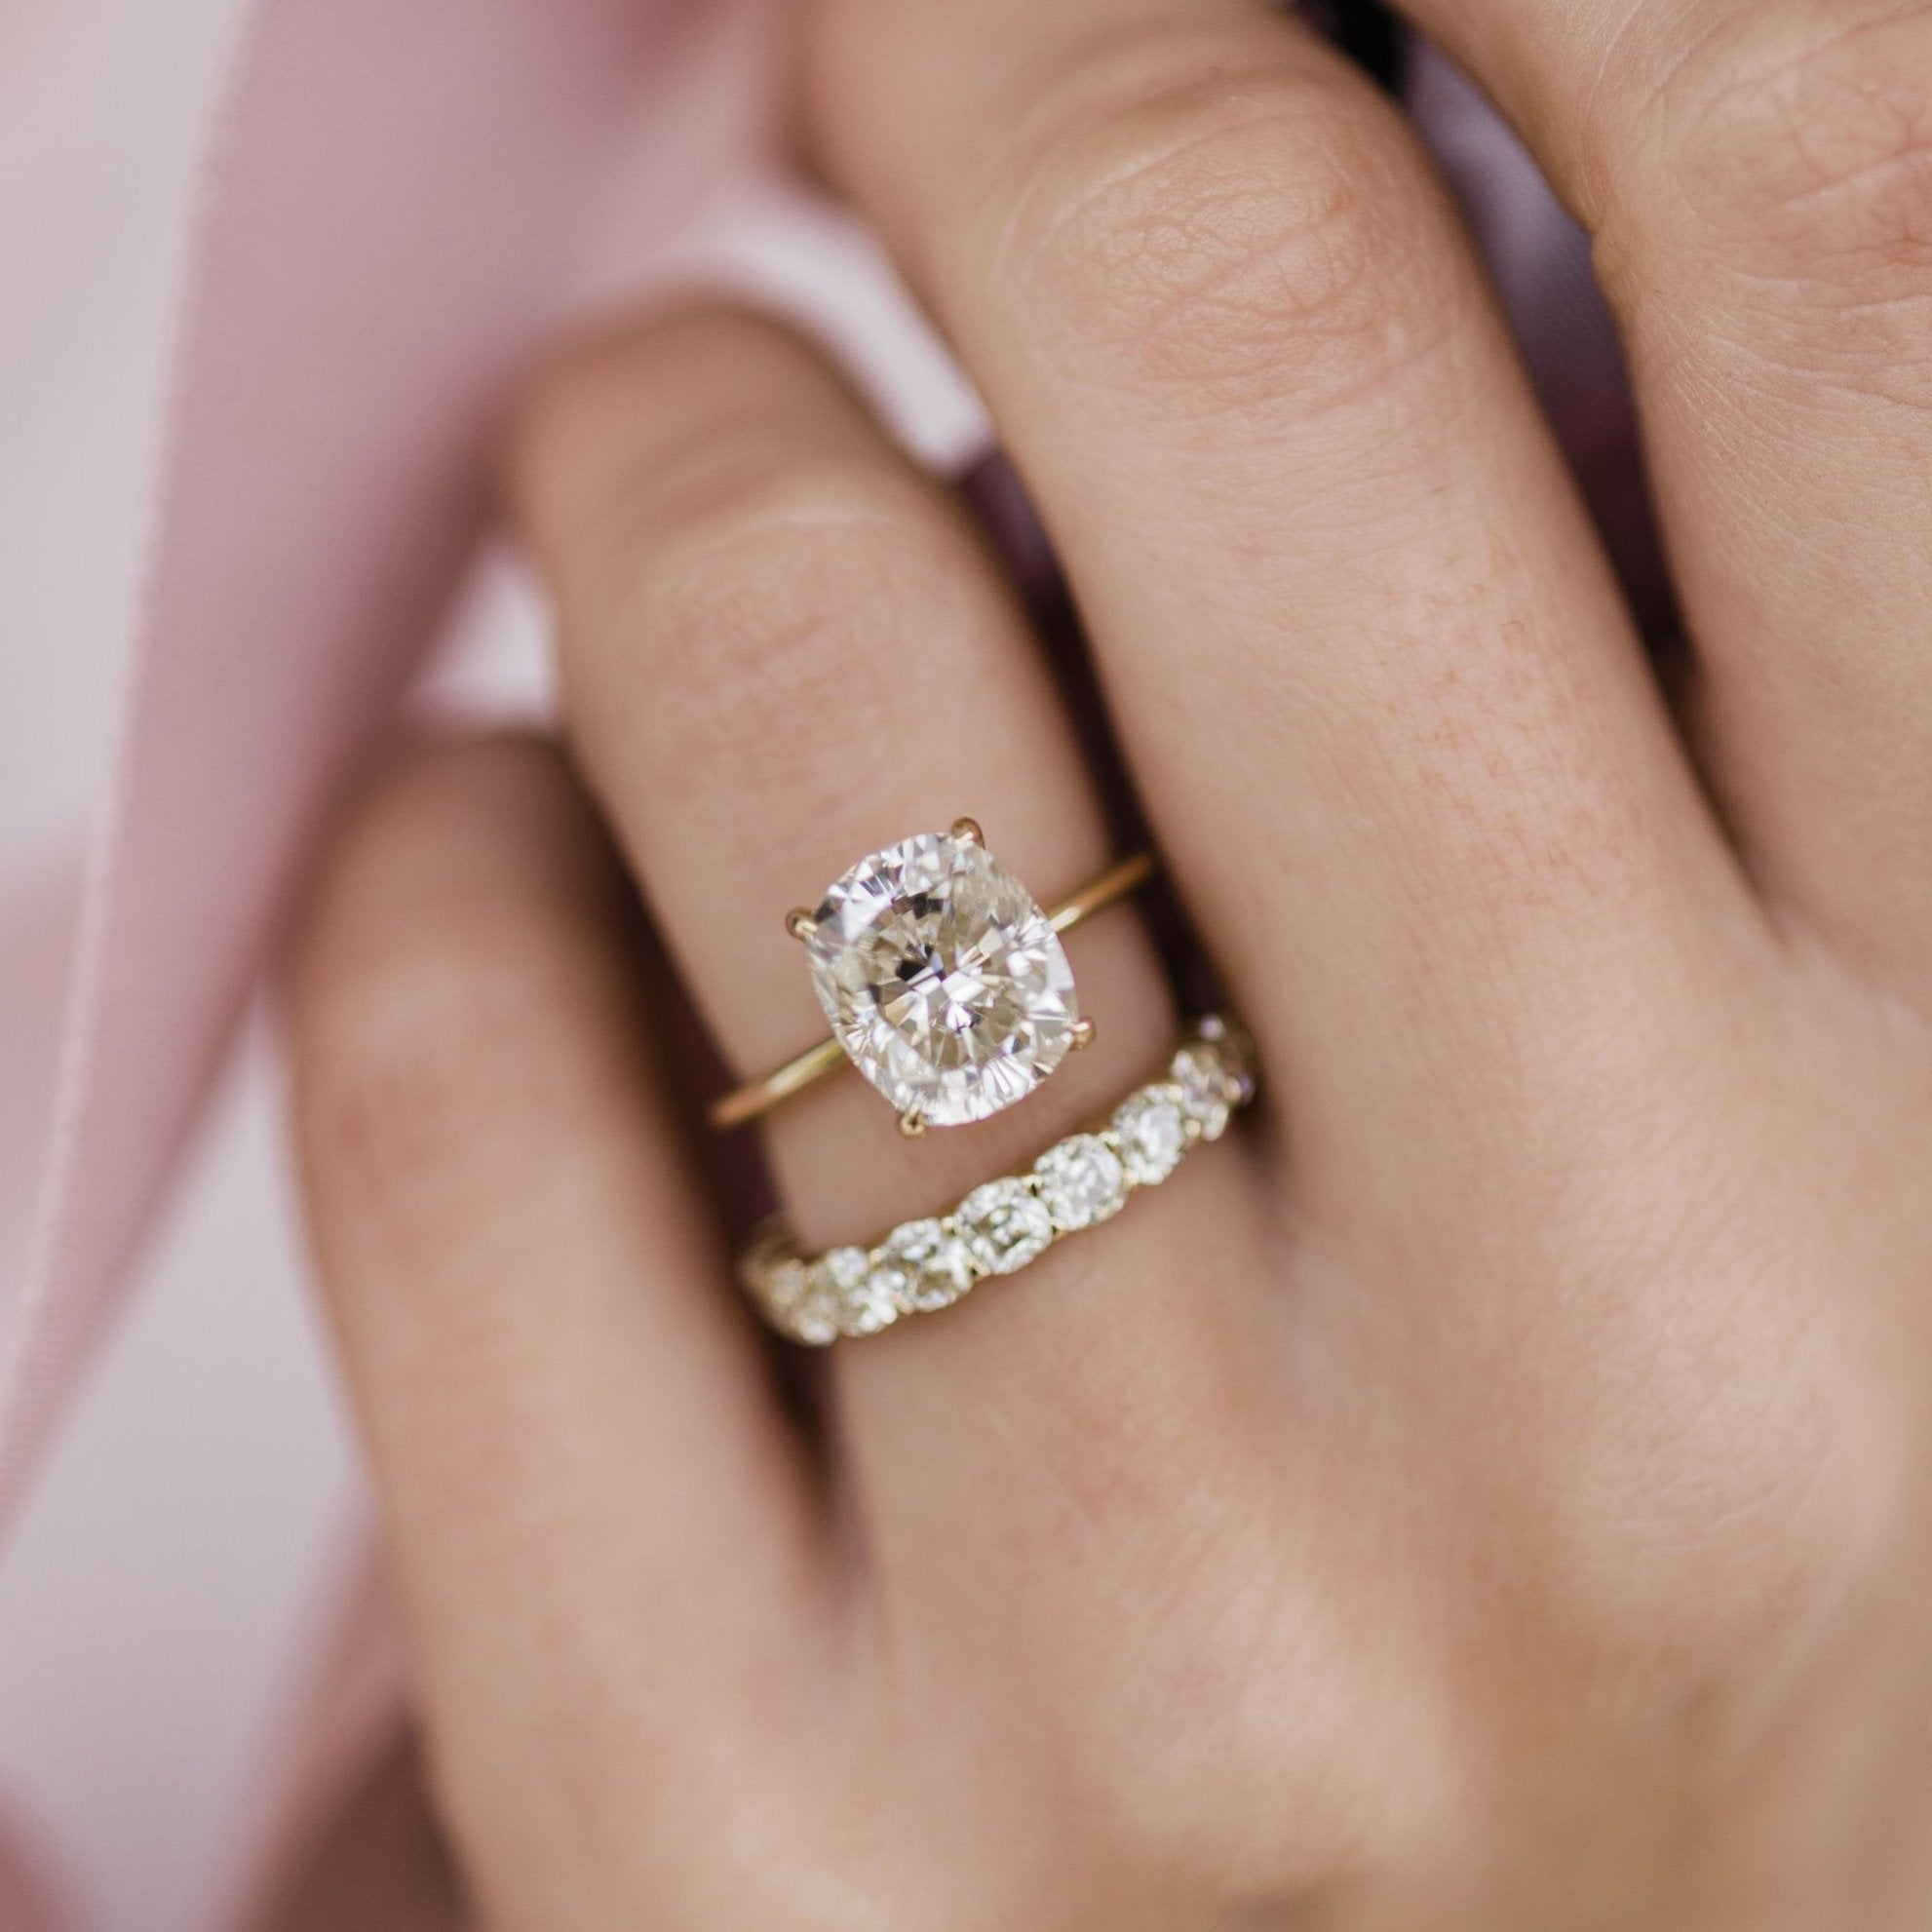 6c44c3c5499a3 The Harper Ring (3.15 Carat)